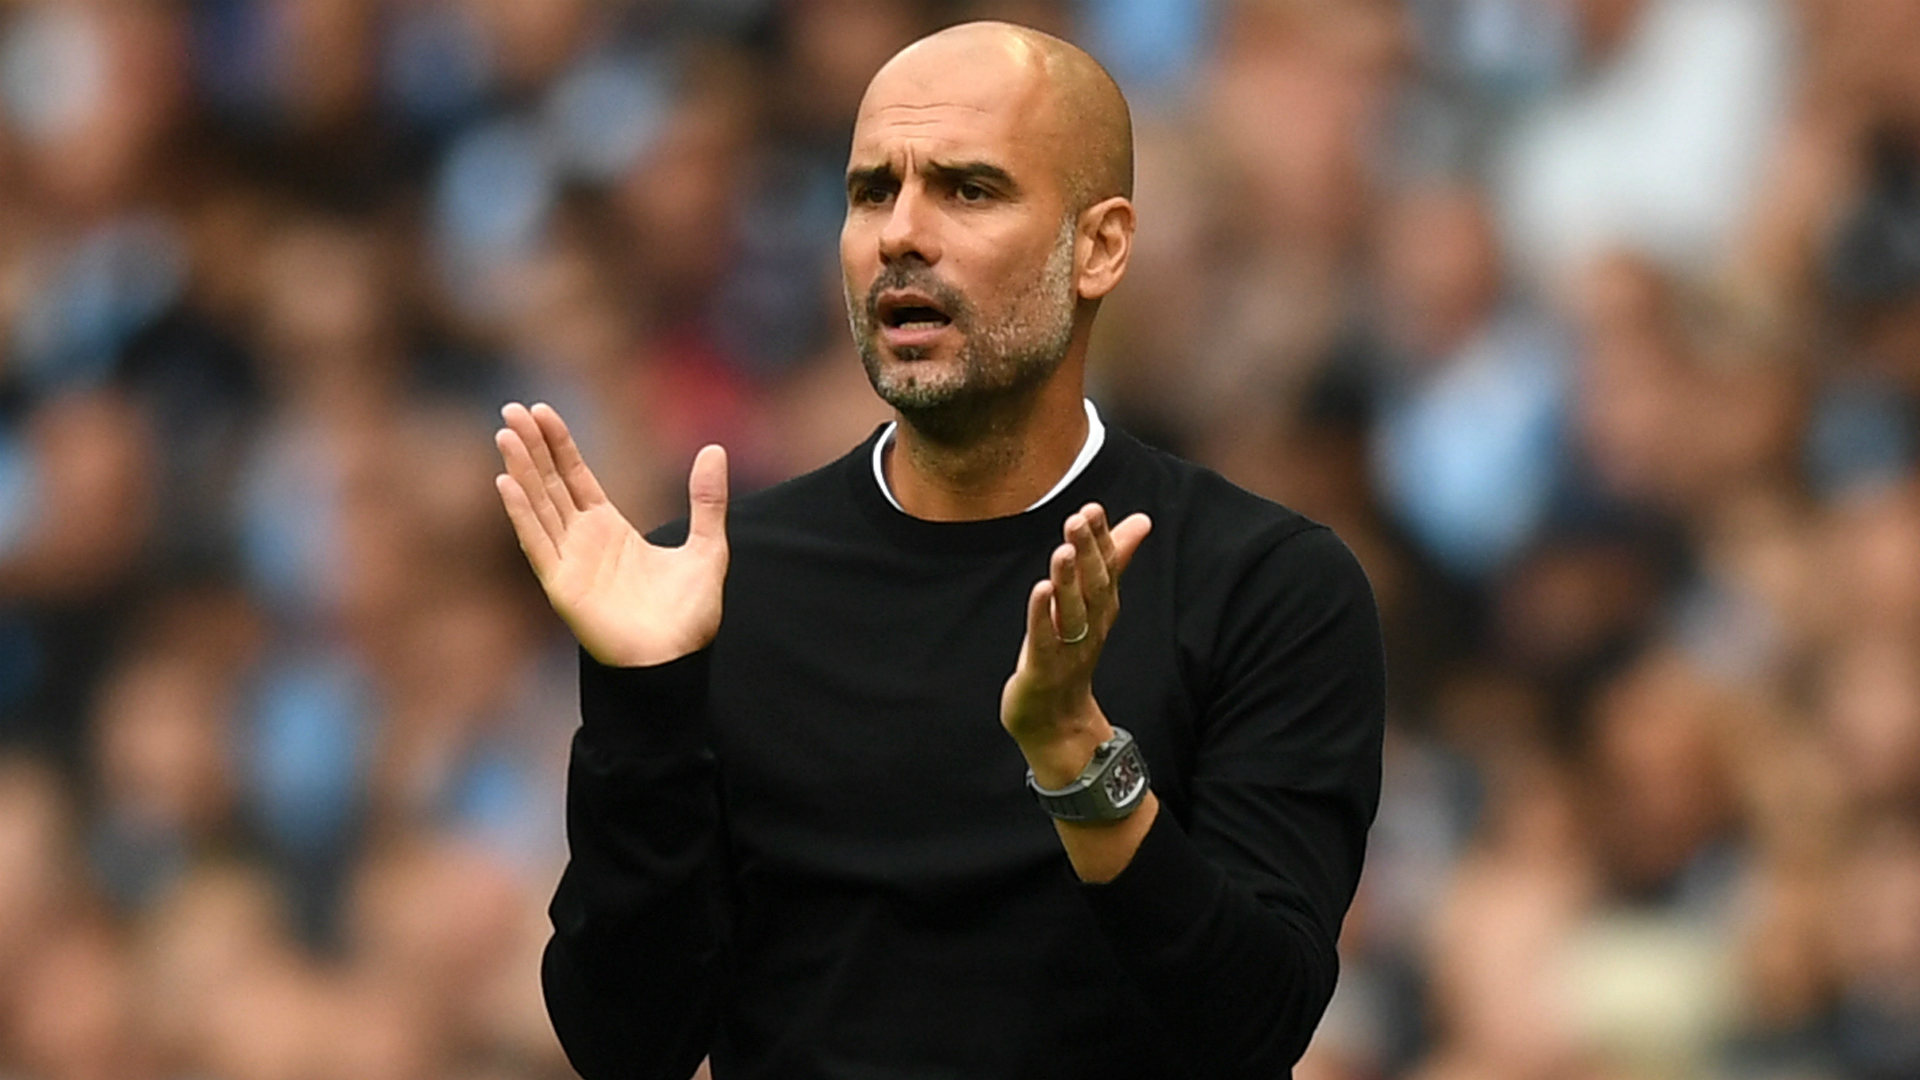 I'll finish where I started - Guardiola wants return to Barca B